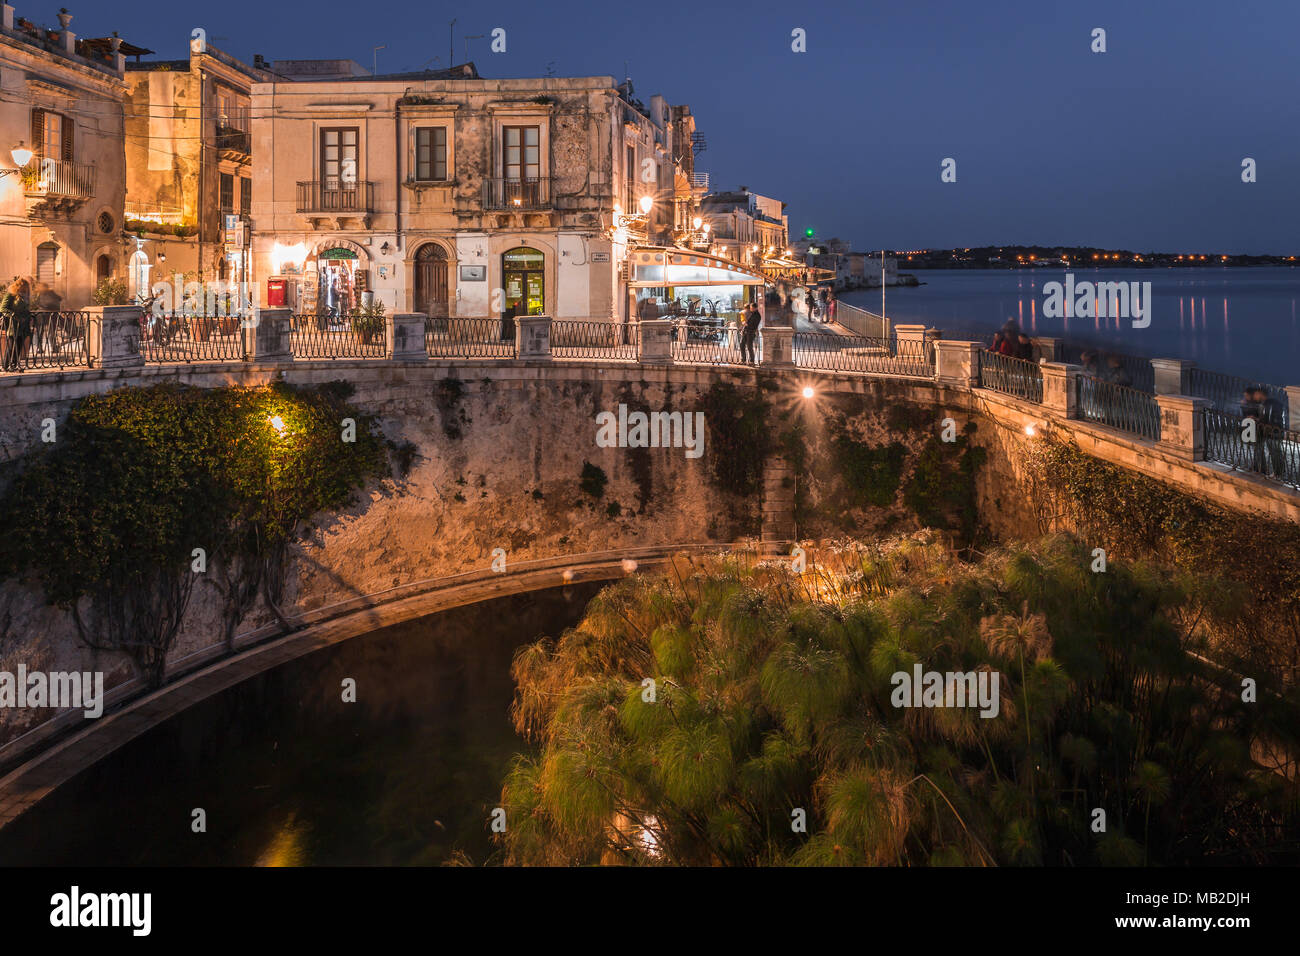 Fonte Aretusa - Fountain of Arethusa - in Ortigia, Siracusa, Sicily, Italy. - Stock Image